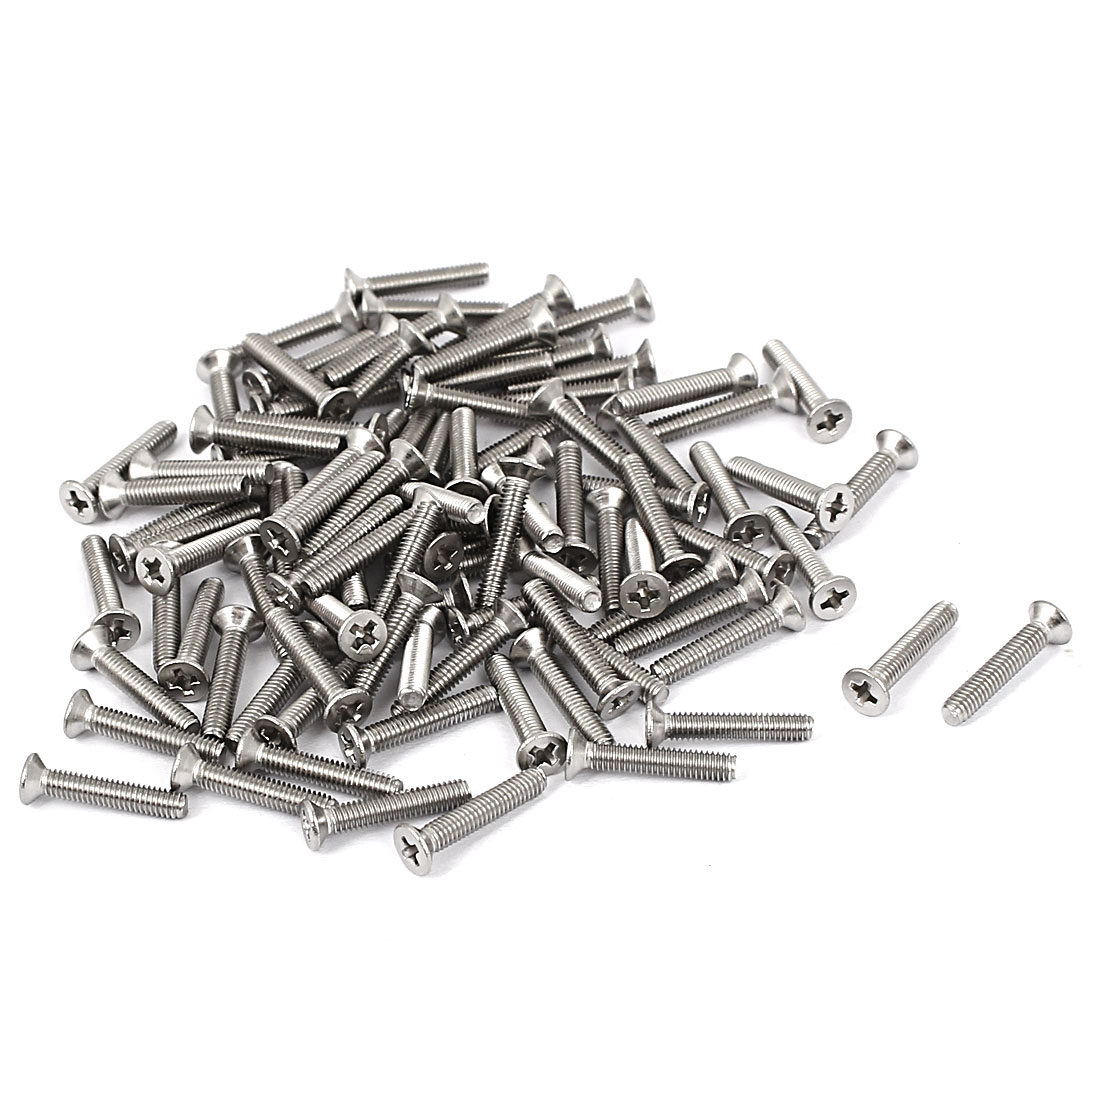 M2.5x14mm Stainless Steel Phillips Flat Countersunk Head Screws 100pcs